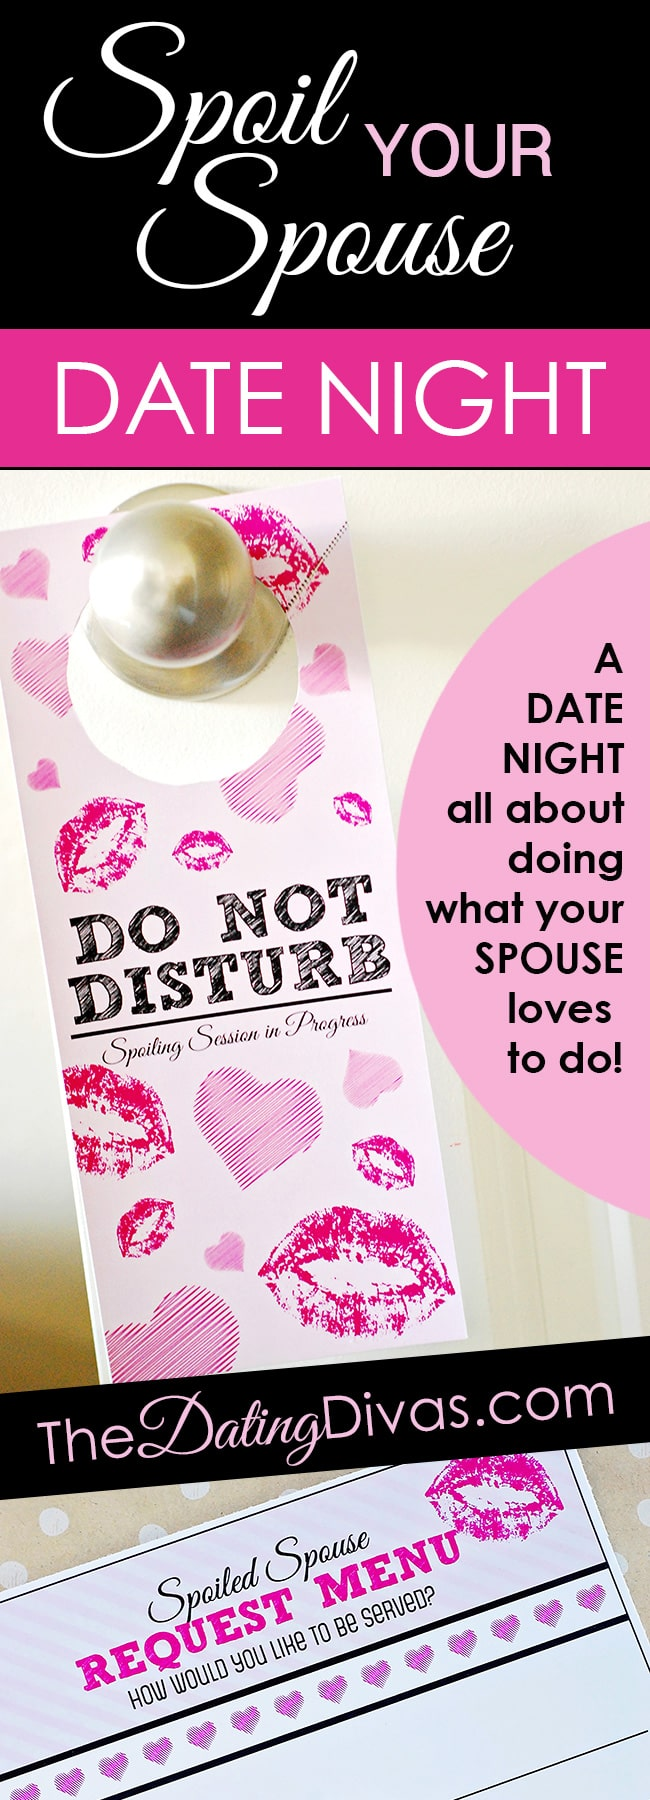 how to show love to your spouse